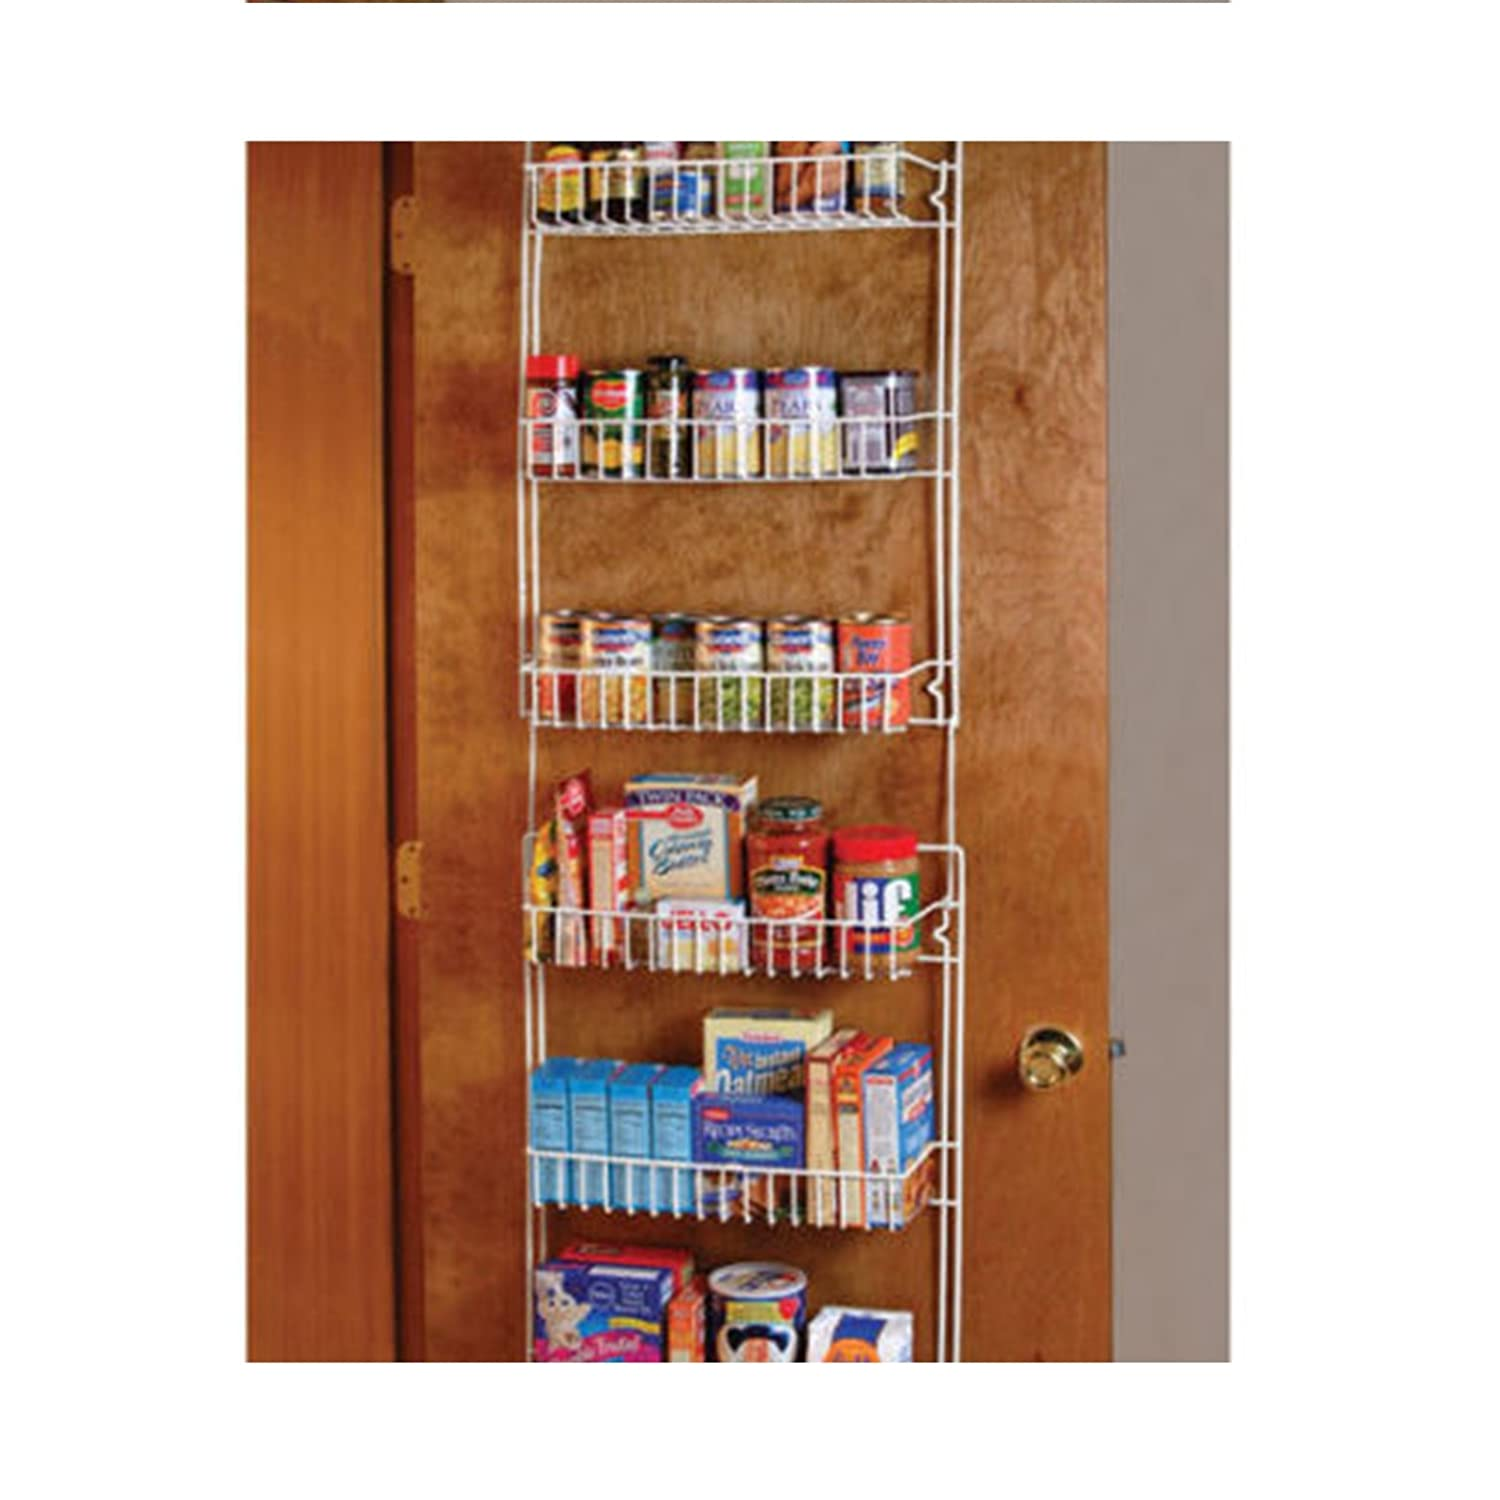 Wondrous Heaven Tvcz Over The Door Storage Rack White Shelf Kitchen Pantry Spice Space Saver Organizer For The Pantry Download Free Architecture Designs Intelgarnamadebymaigaardcom